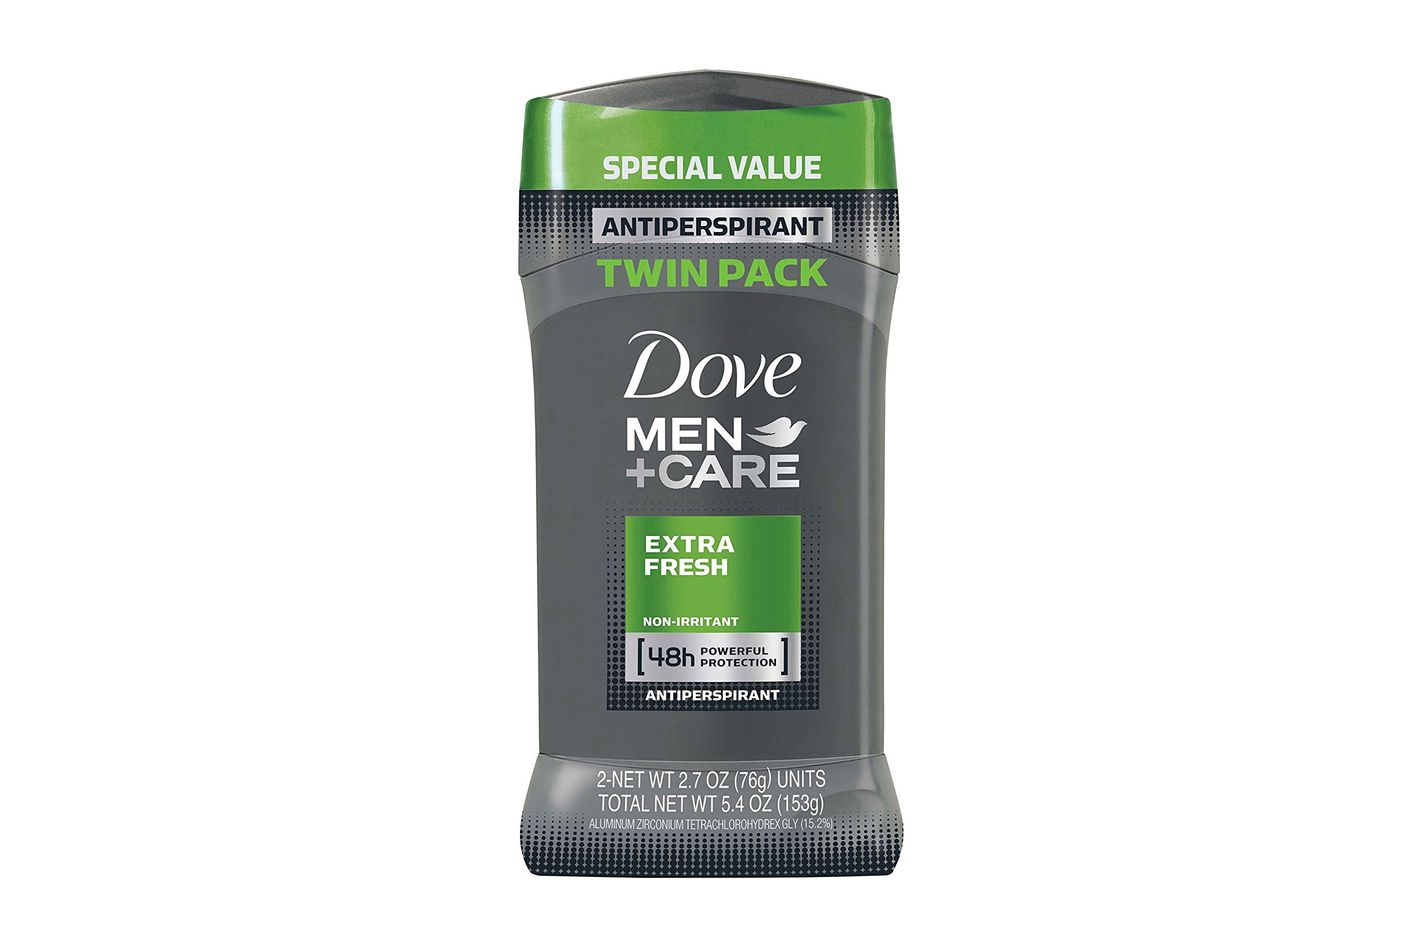 Dove Men+Care Antiperspirant Deodorant Stick, Extra Fresh (Pack of 2)